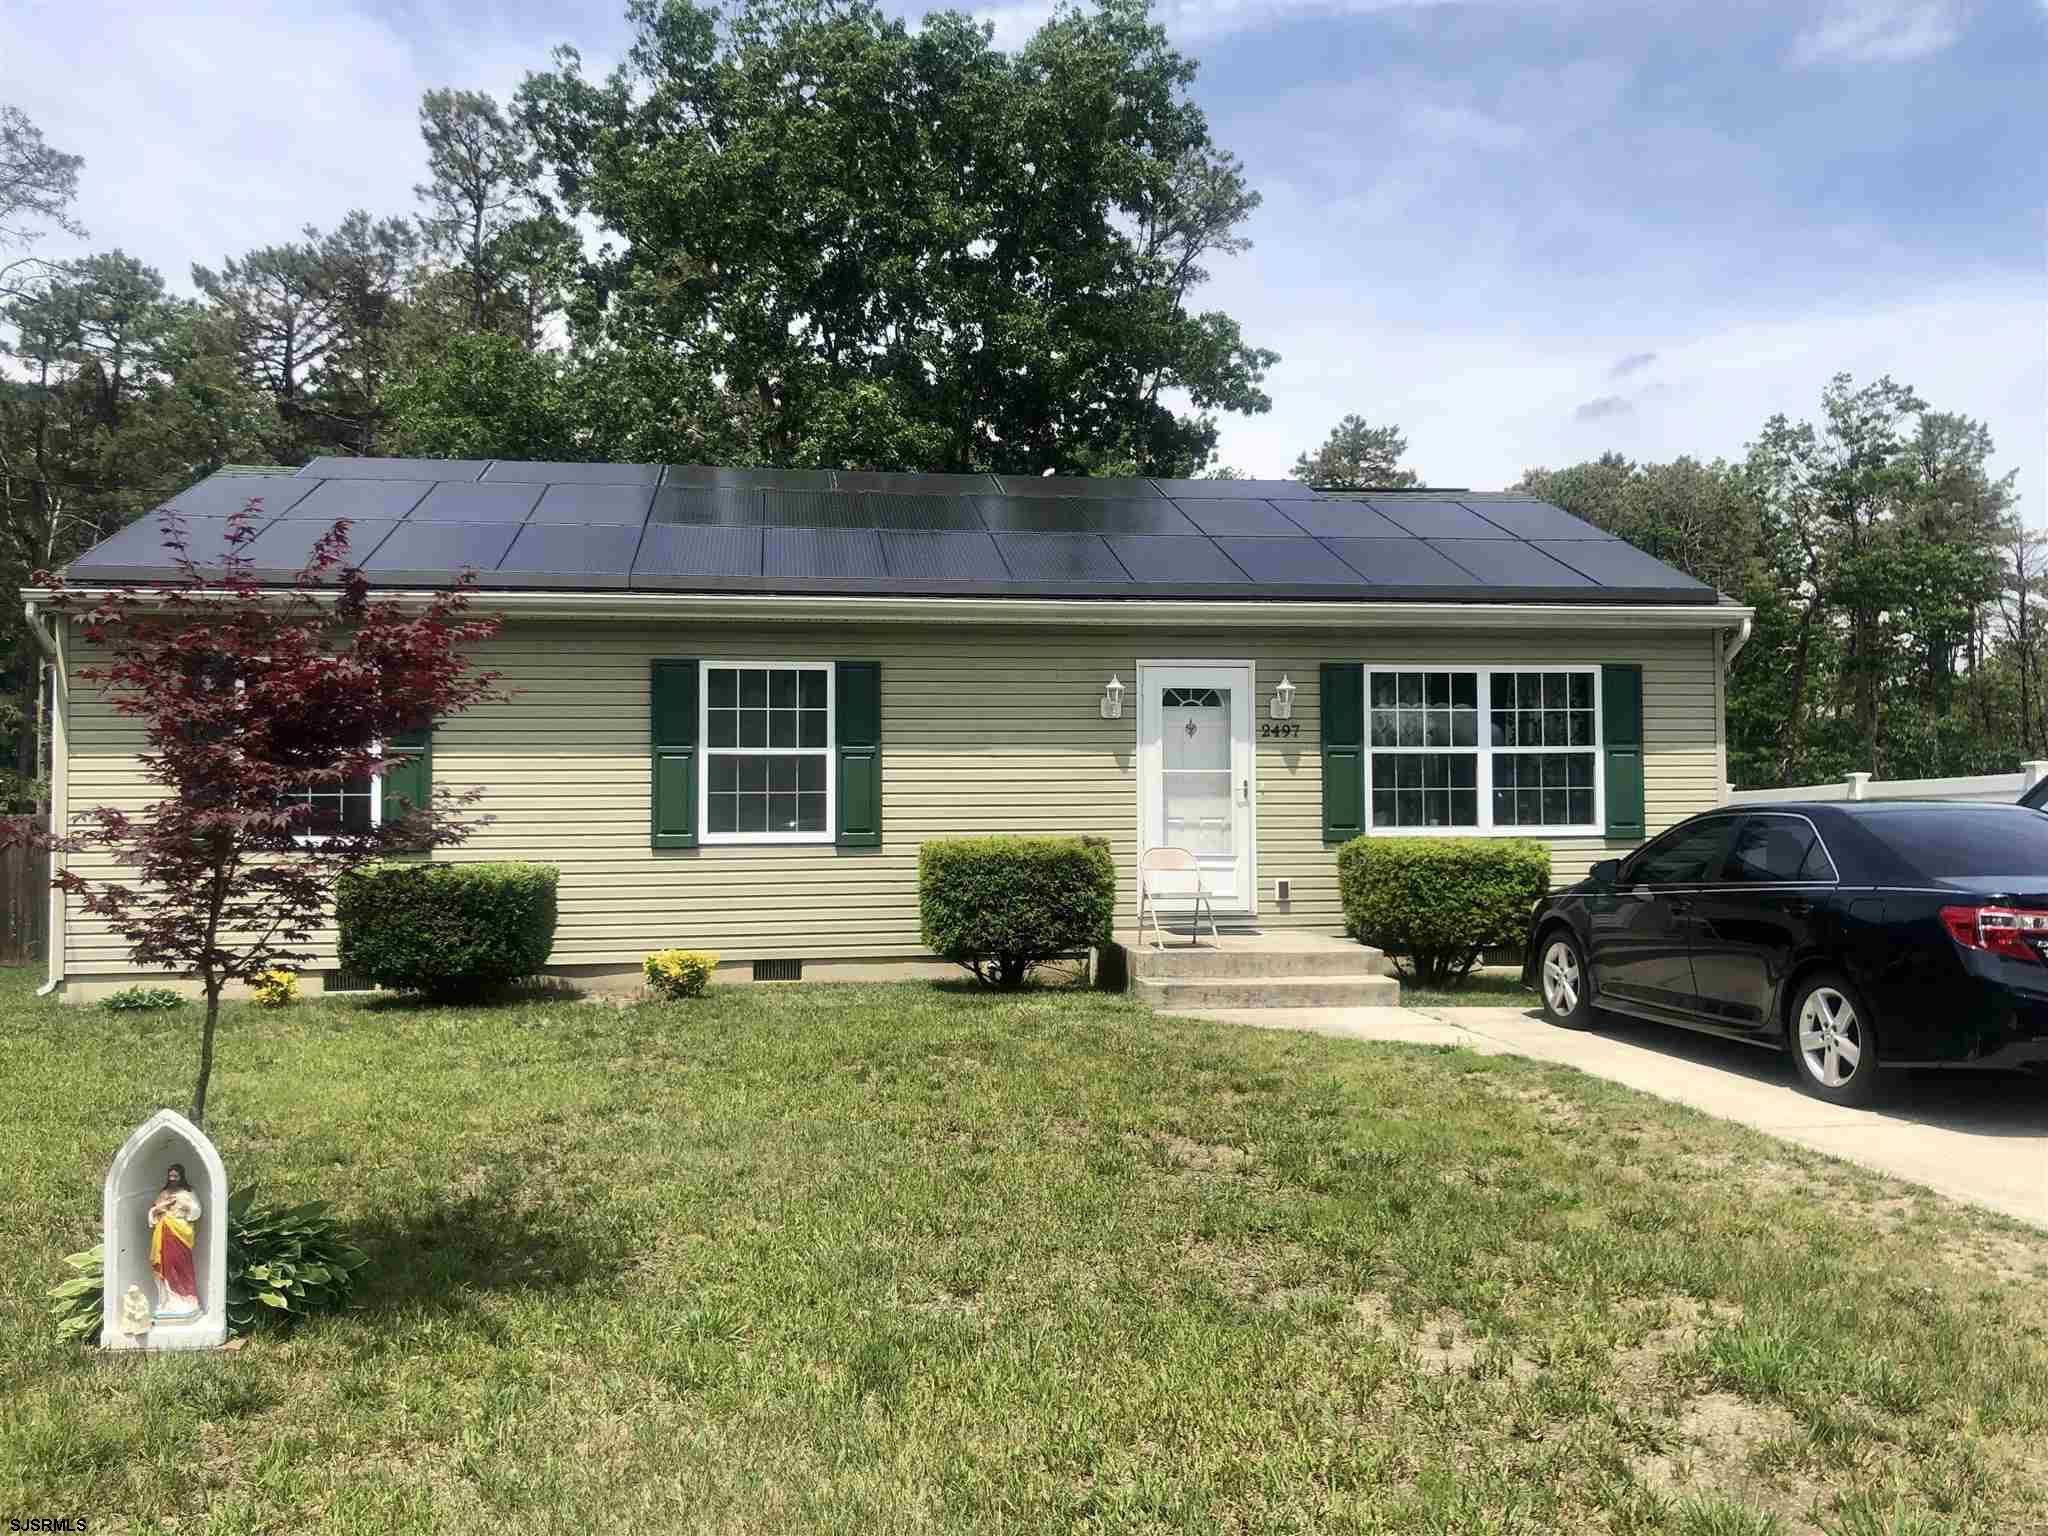 Lovely well maintained ranch! This home features 3 bedrooms and two full bathrooms. Large master suite. Huge backyard with shed. Solar panels meaning no high electric bills and sometimes even credit back! Don't miss this one!